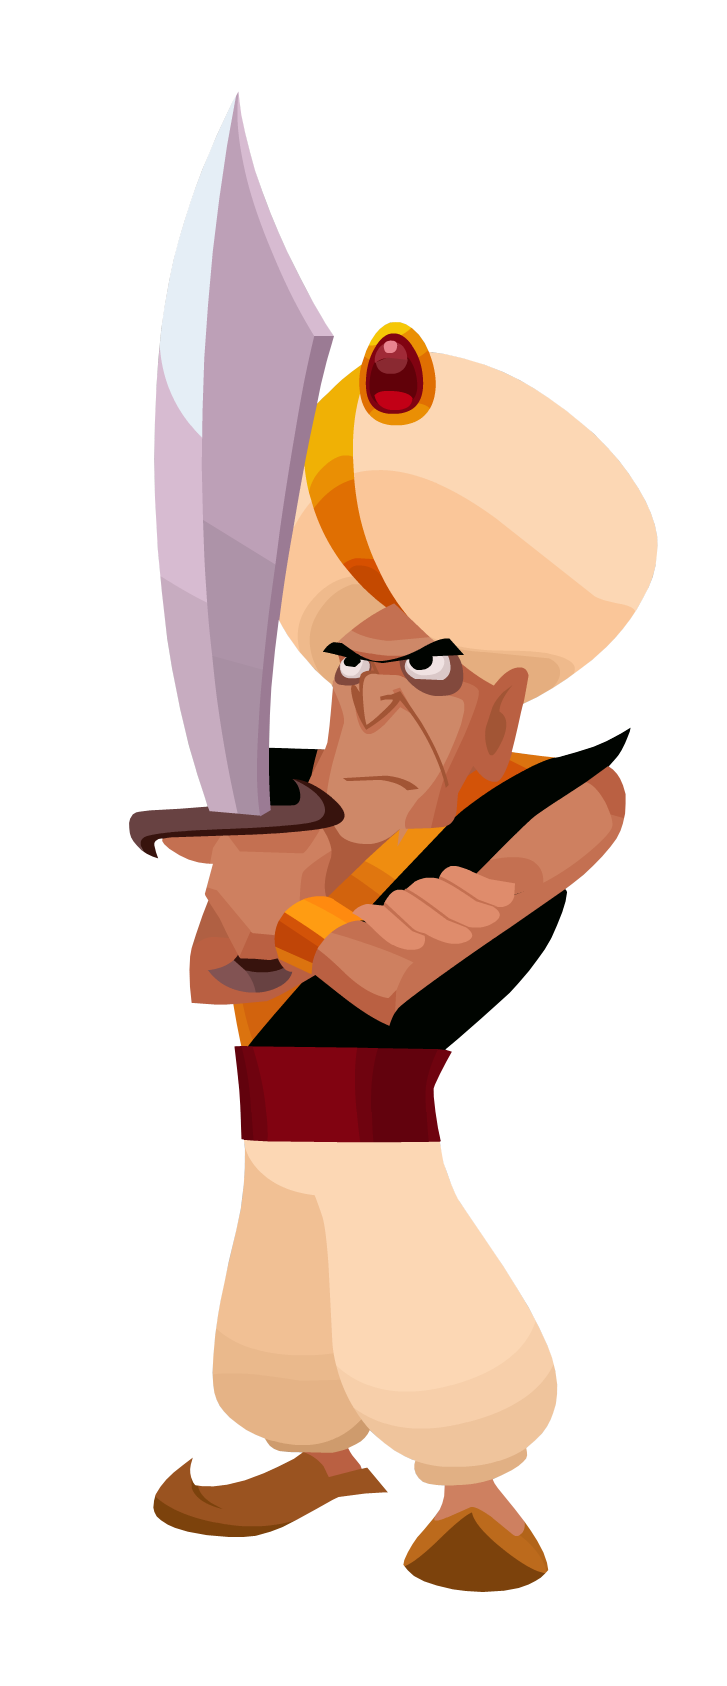 Image - Royal Guard KHX.png   Disney Wiki   FANDOM powered by Wikia for Aladdin Characters Png  56mzq